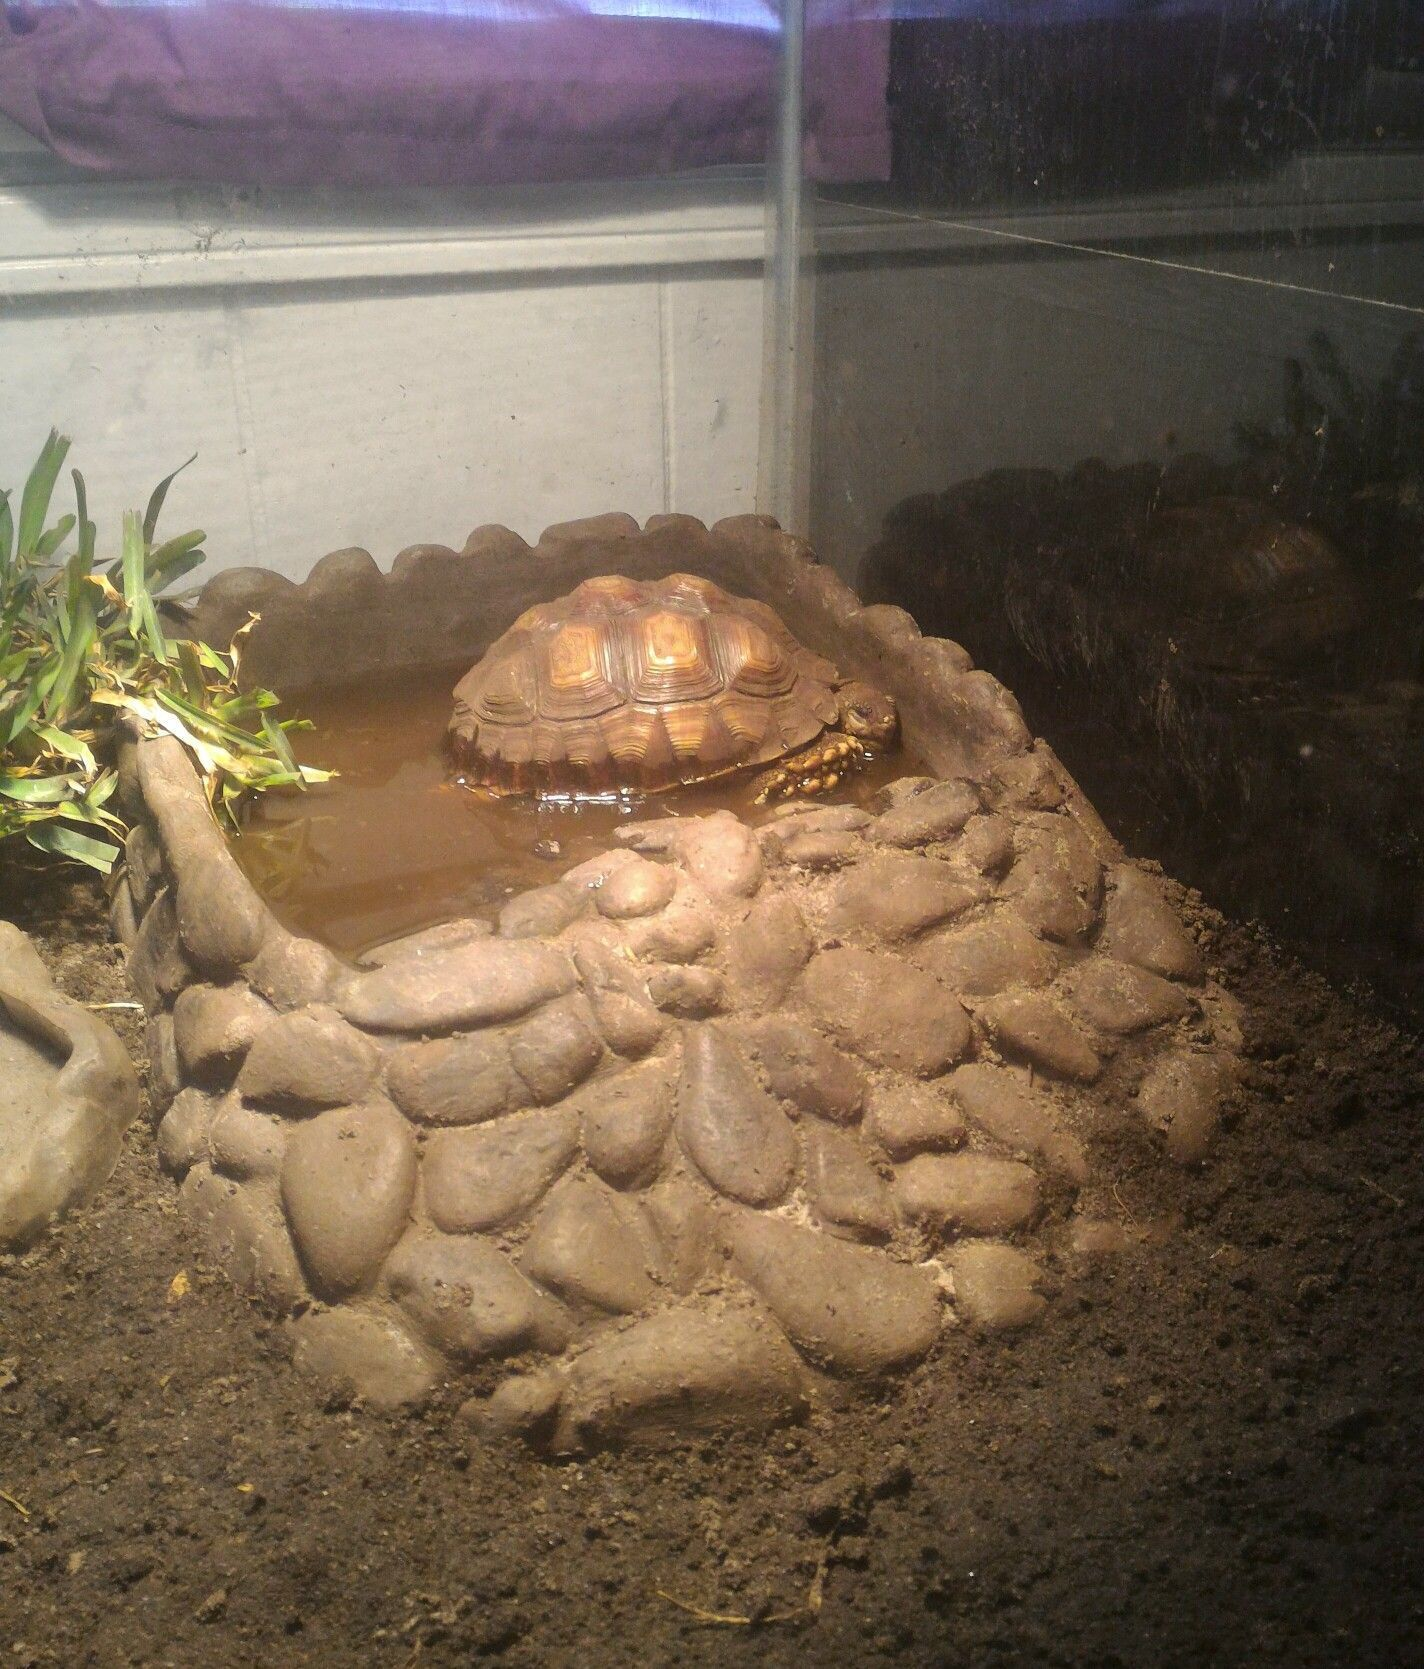 African spurred tortoise napping in his soaking tub tortoise